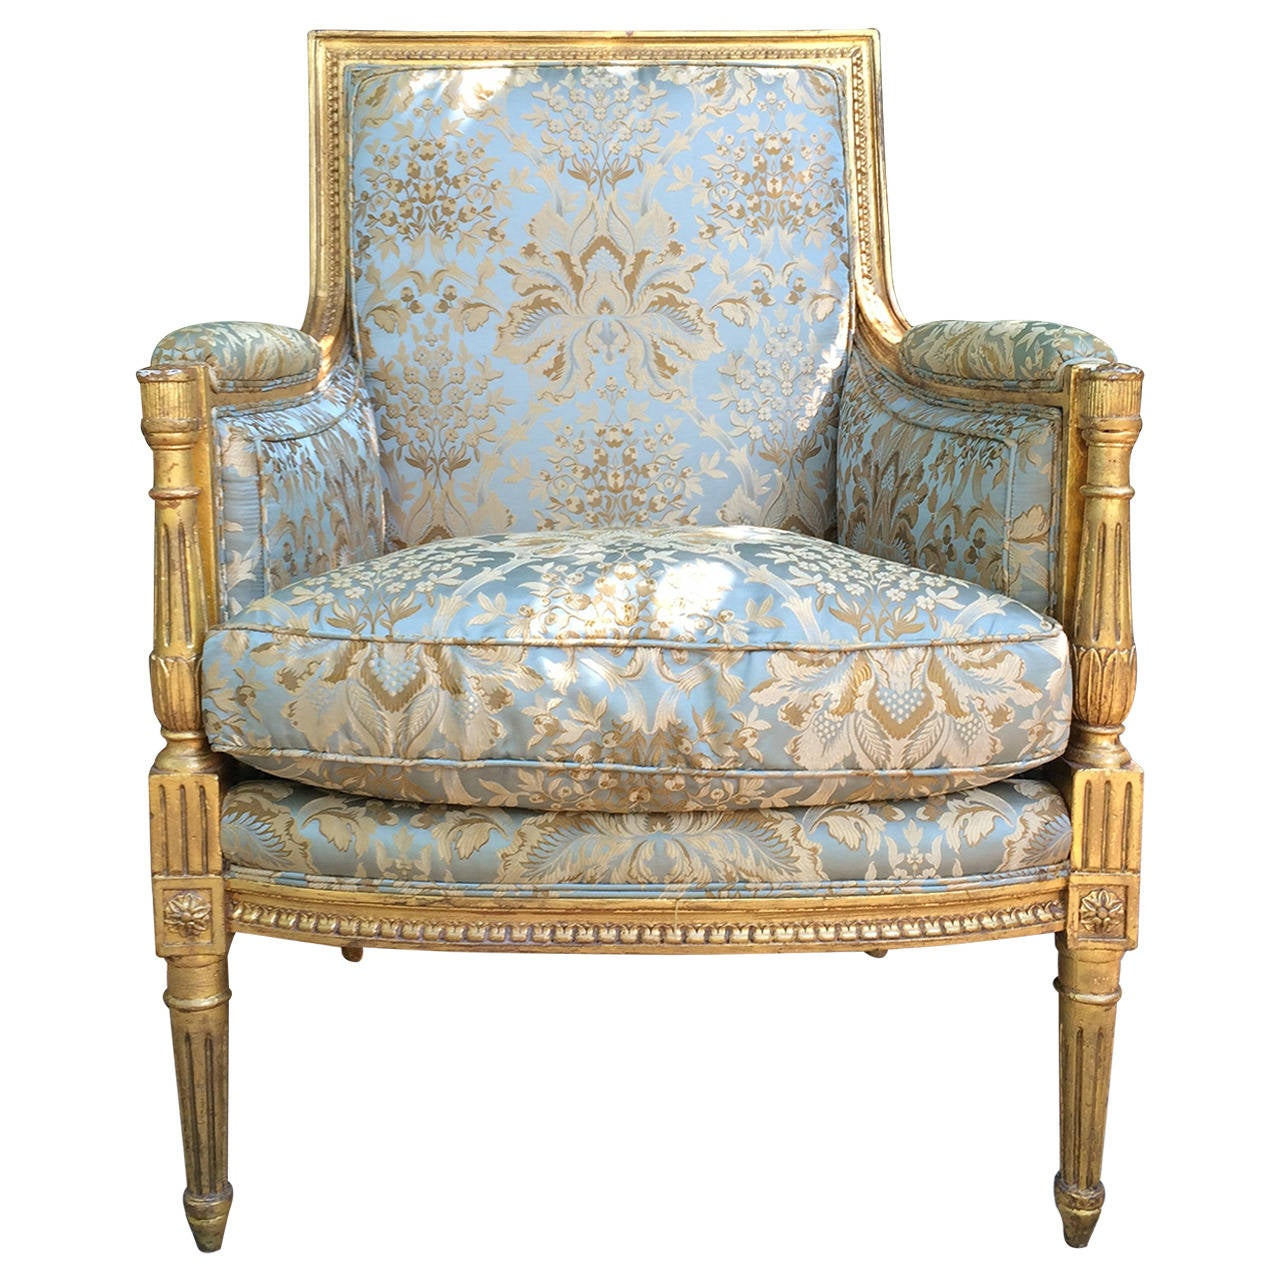 bergere chairs the chairman iron chef louis xvi style carved giltwood for sale at 1stdibs